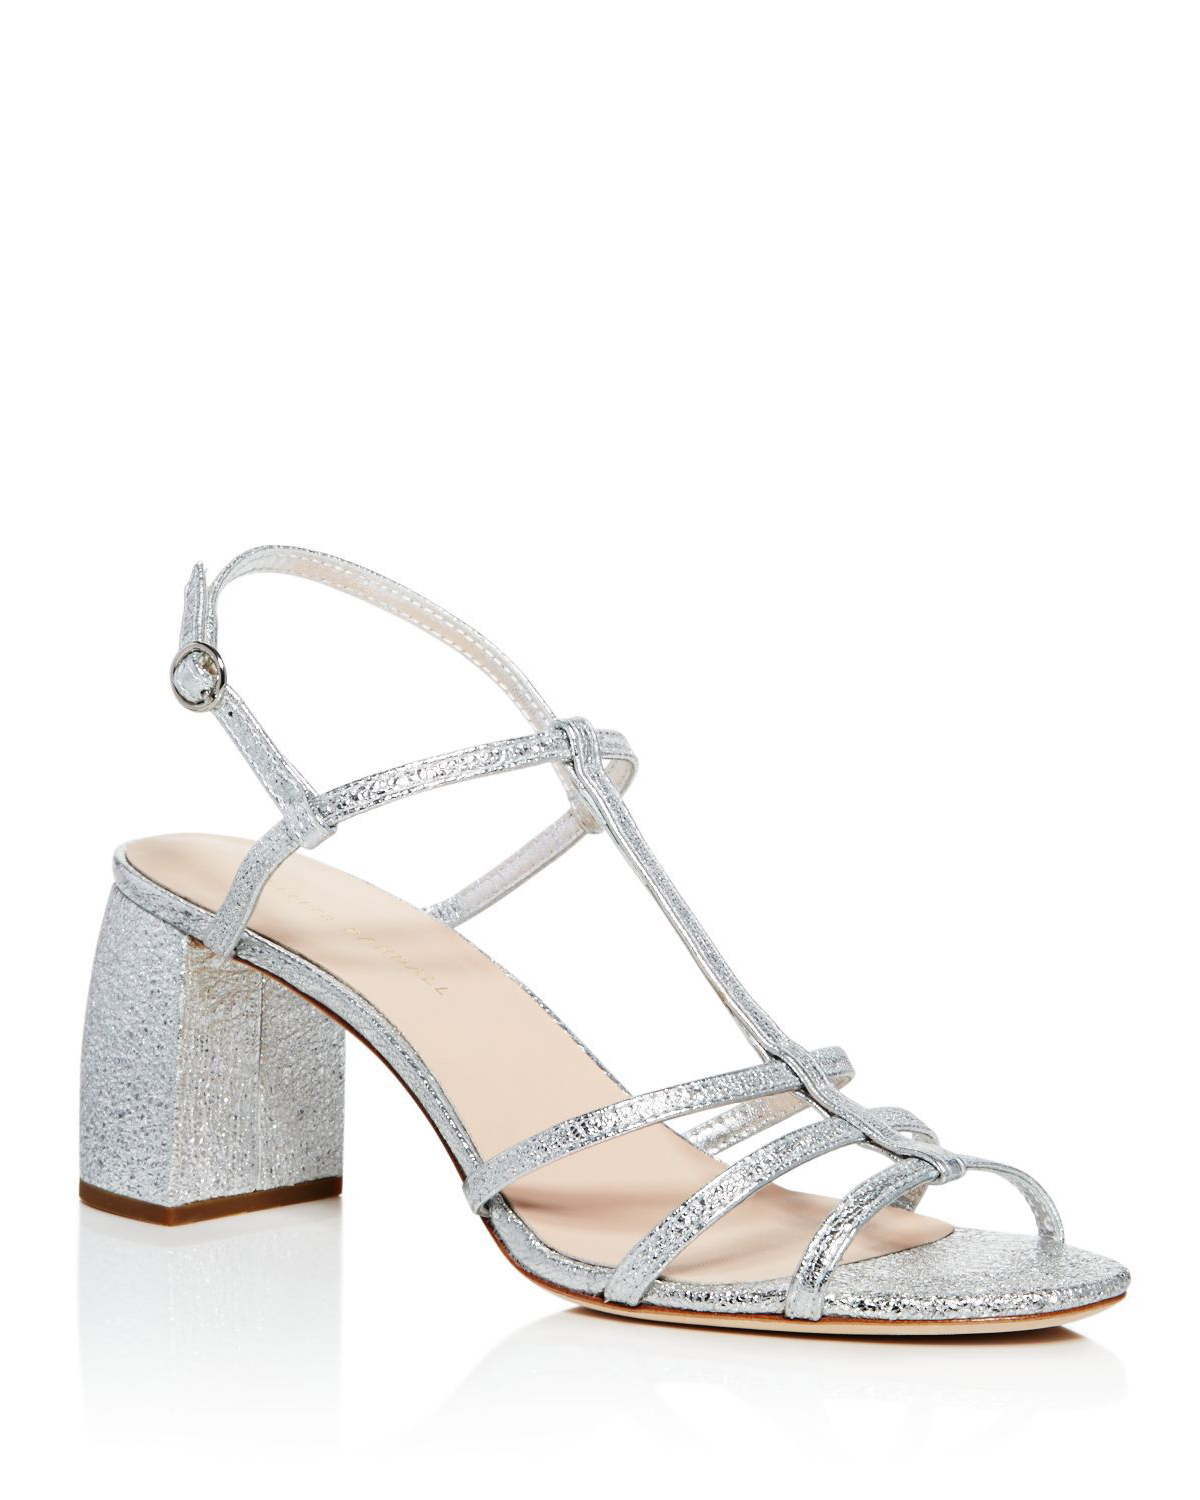 "Loeffler Randall ""Elena"" Crinkled Leather Sandals"